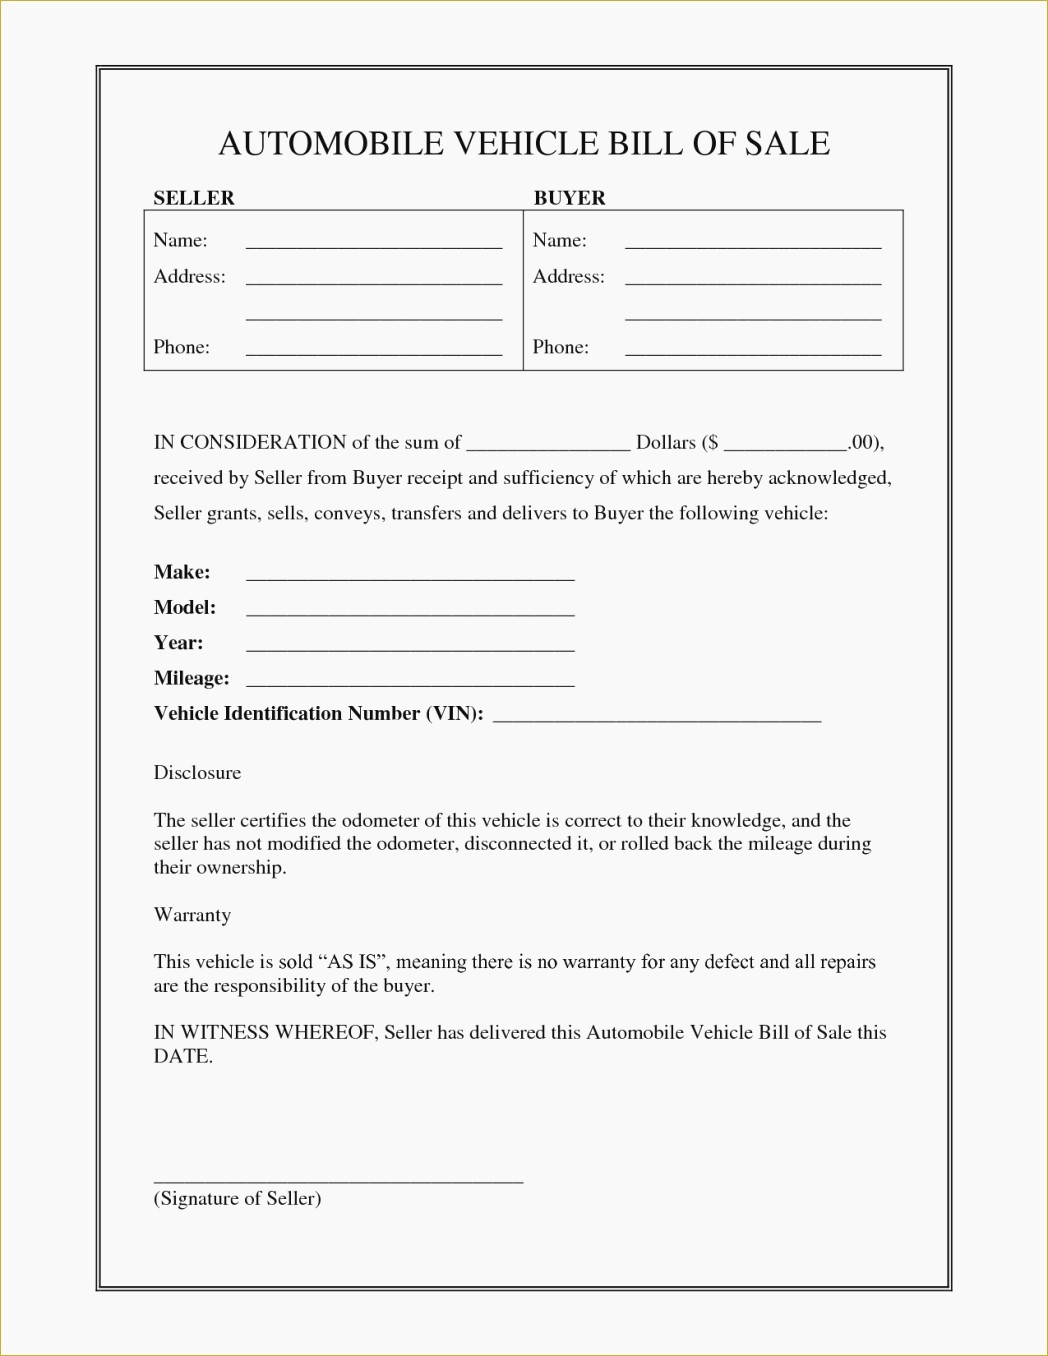 free printable bill of sale form sample documents::Car Bill of Sale Form Template Printable